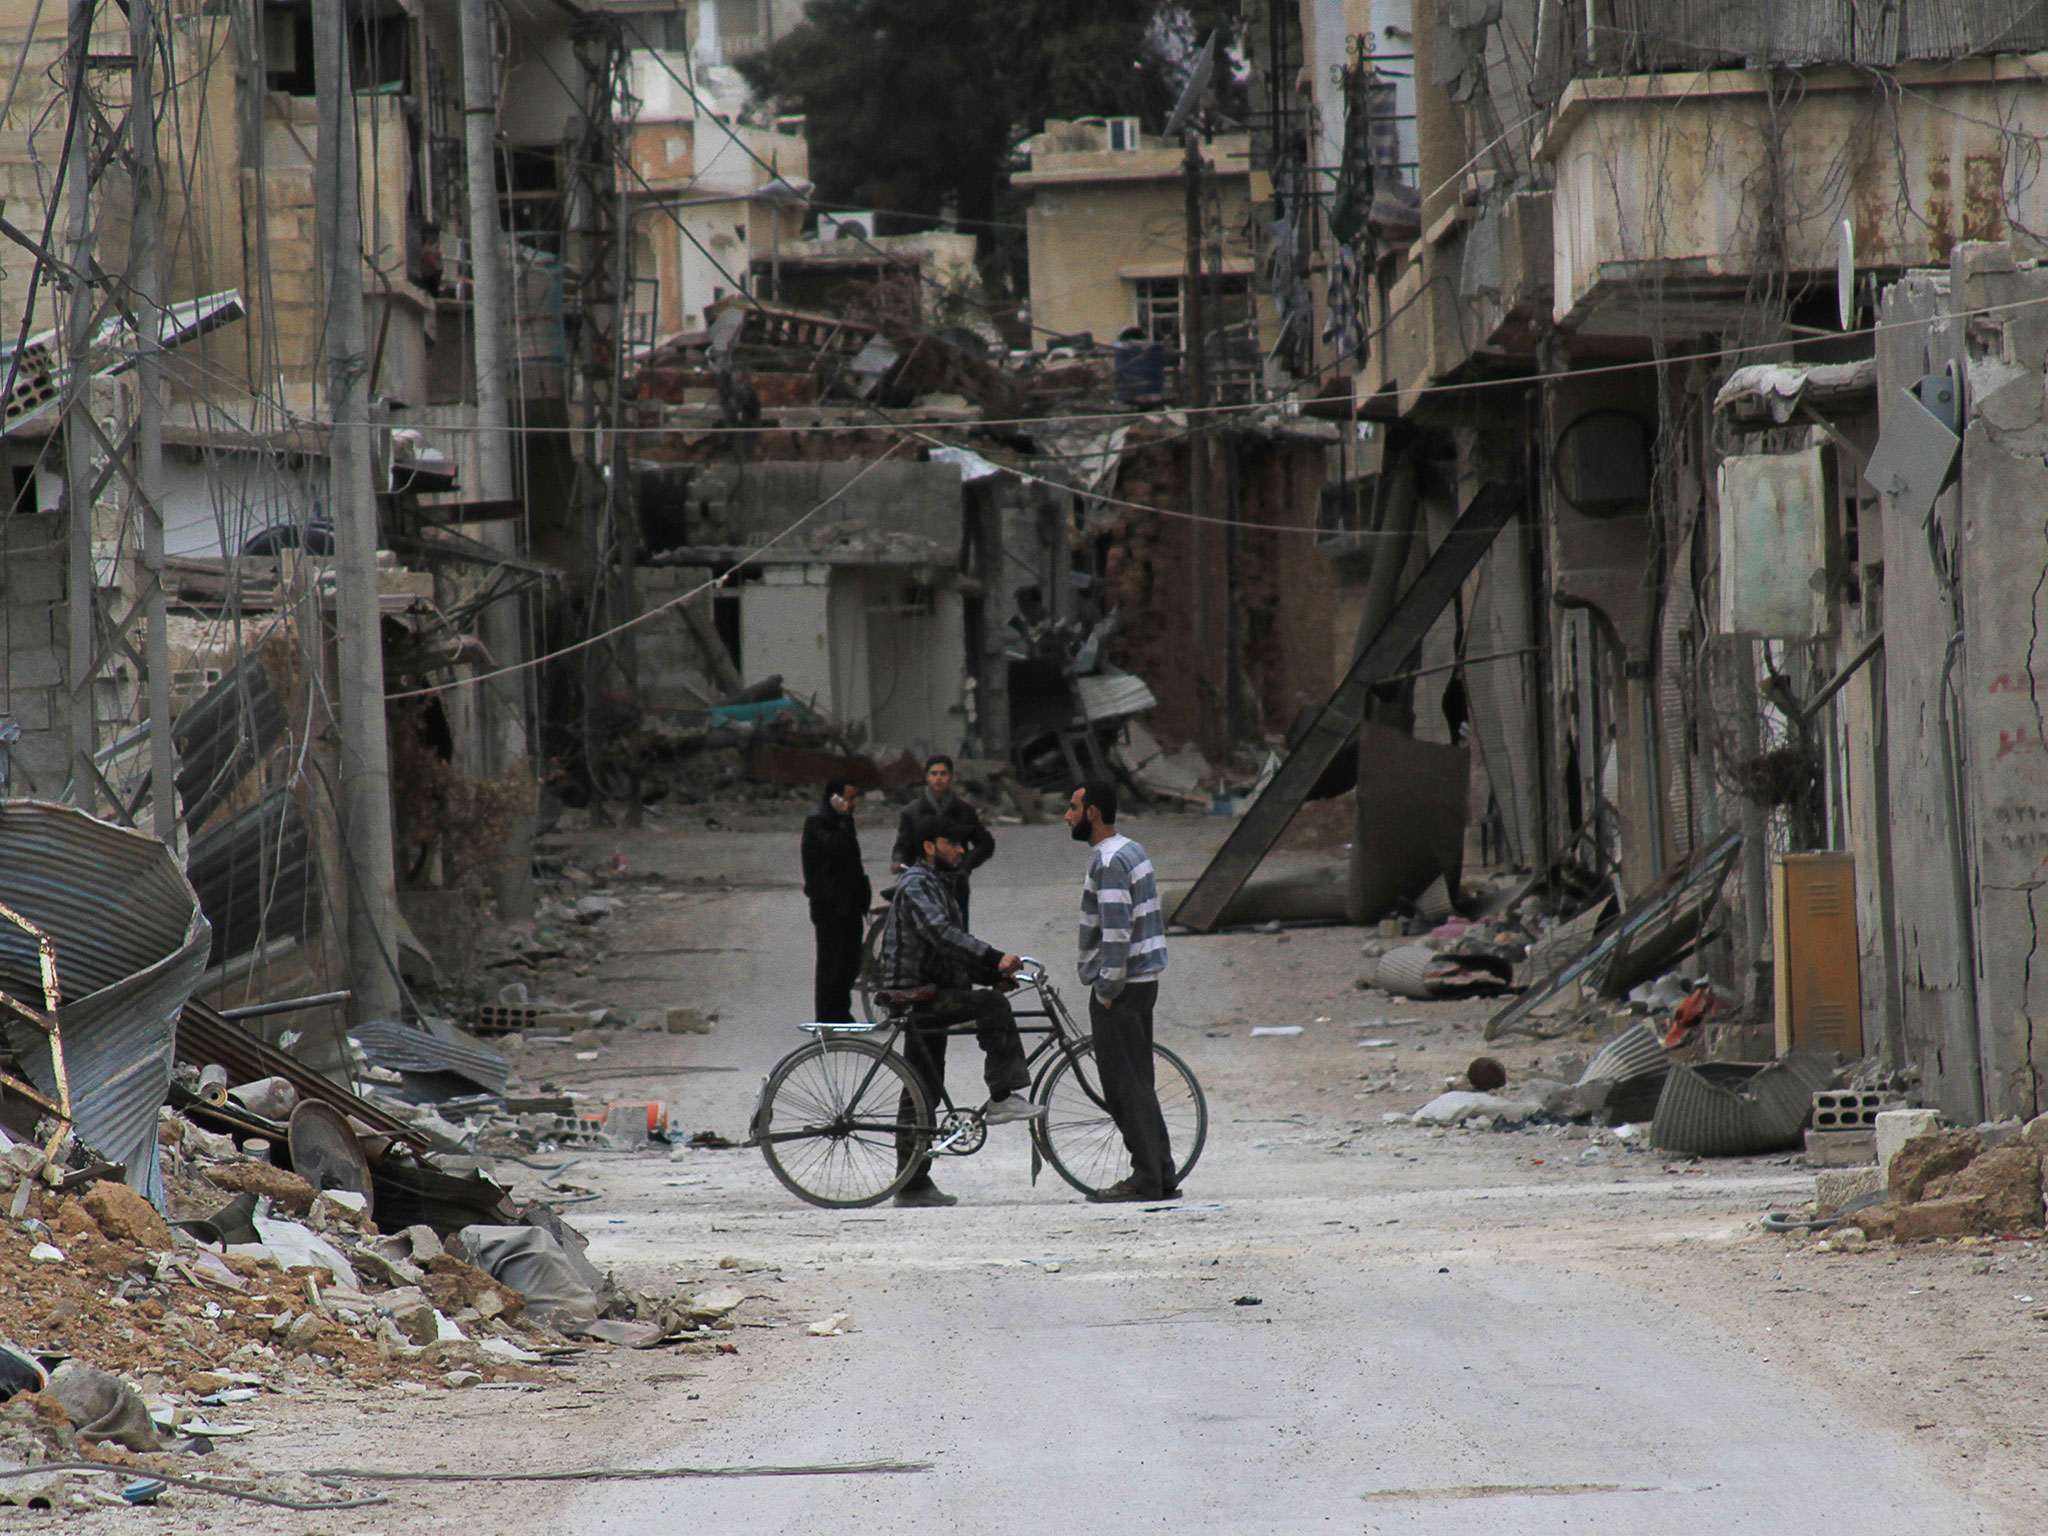 Daraya has been under siege since 2012